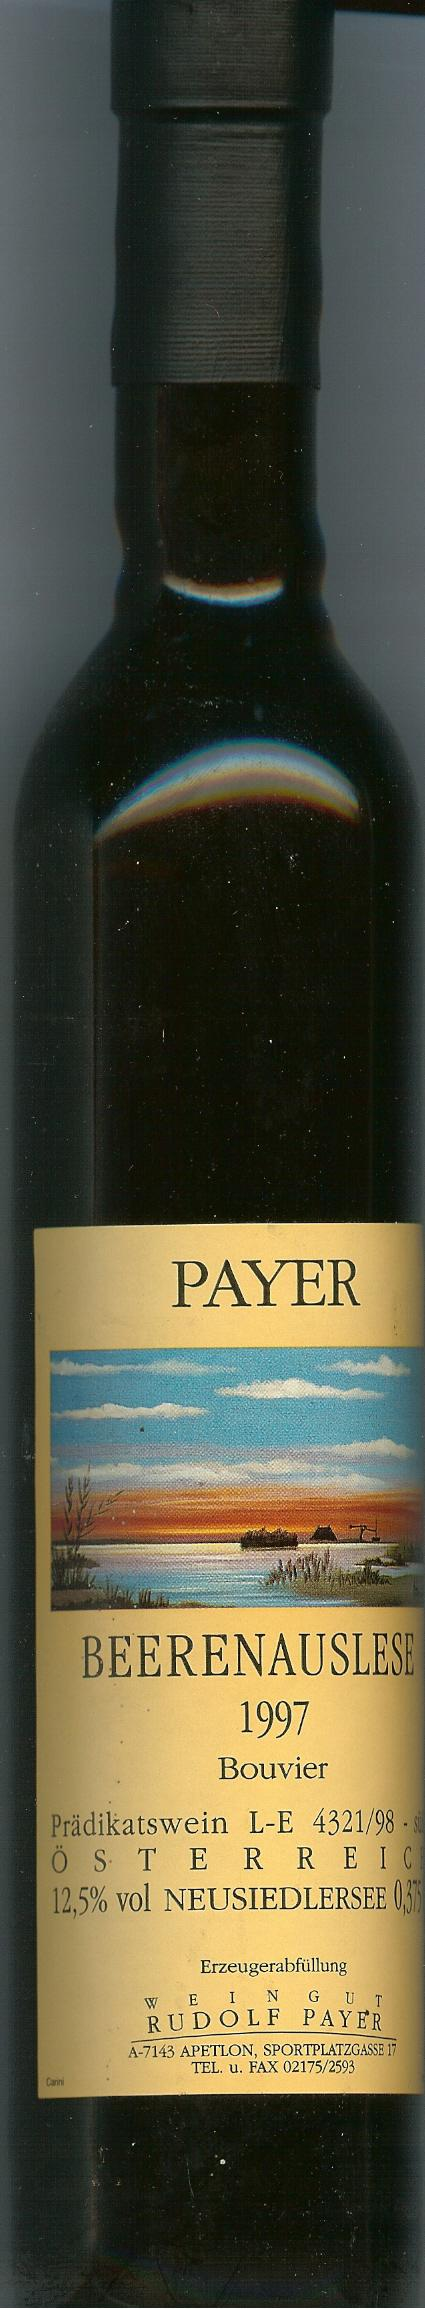 Autriche: Payer, beerenauslese  12,5° 1997 37,5Cl